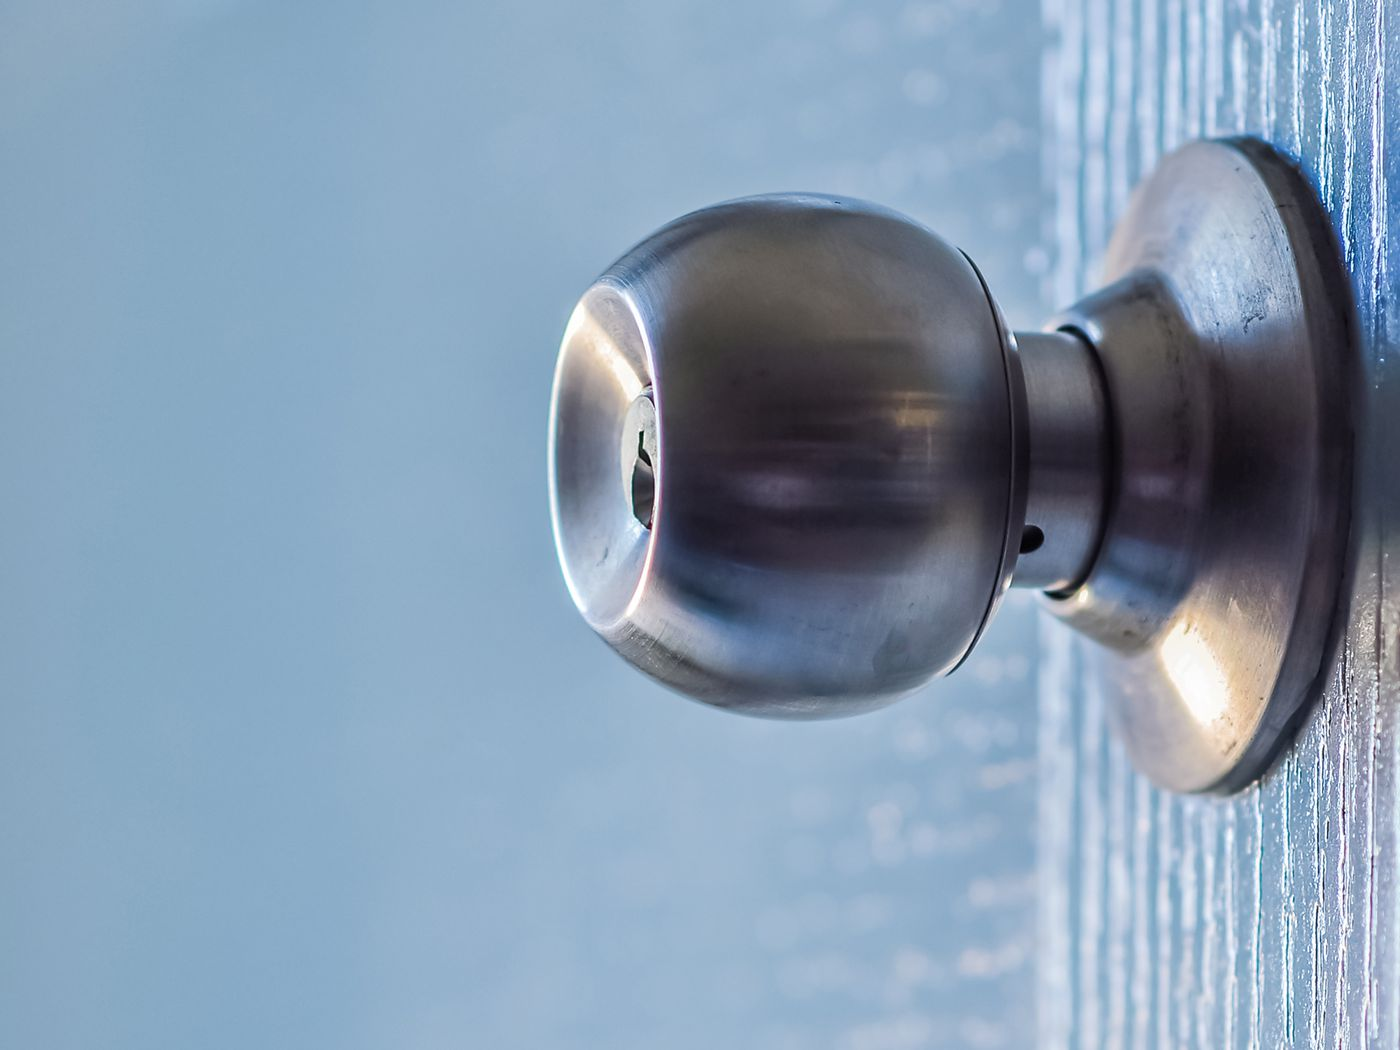 How To Remove A Doorknob This Old House